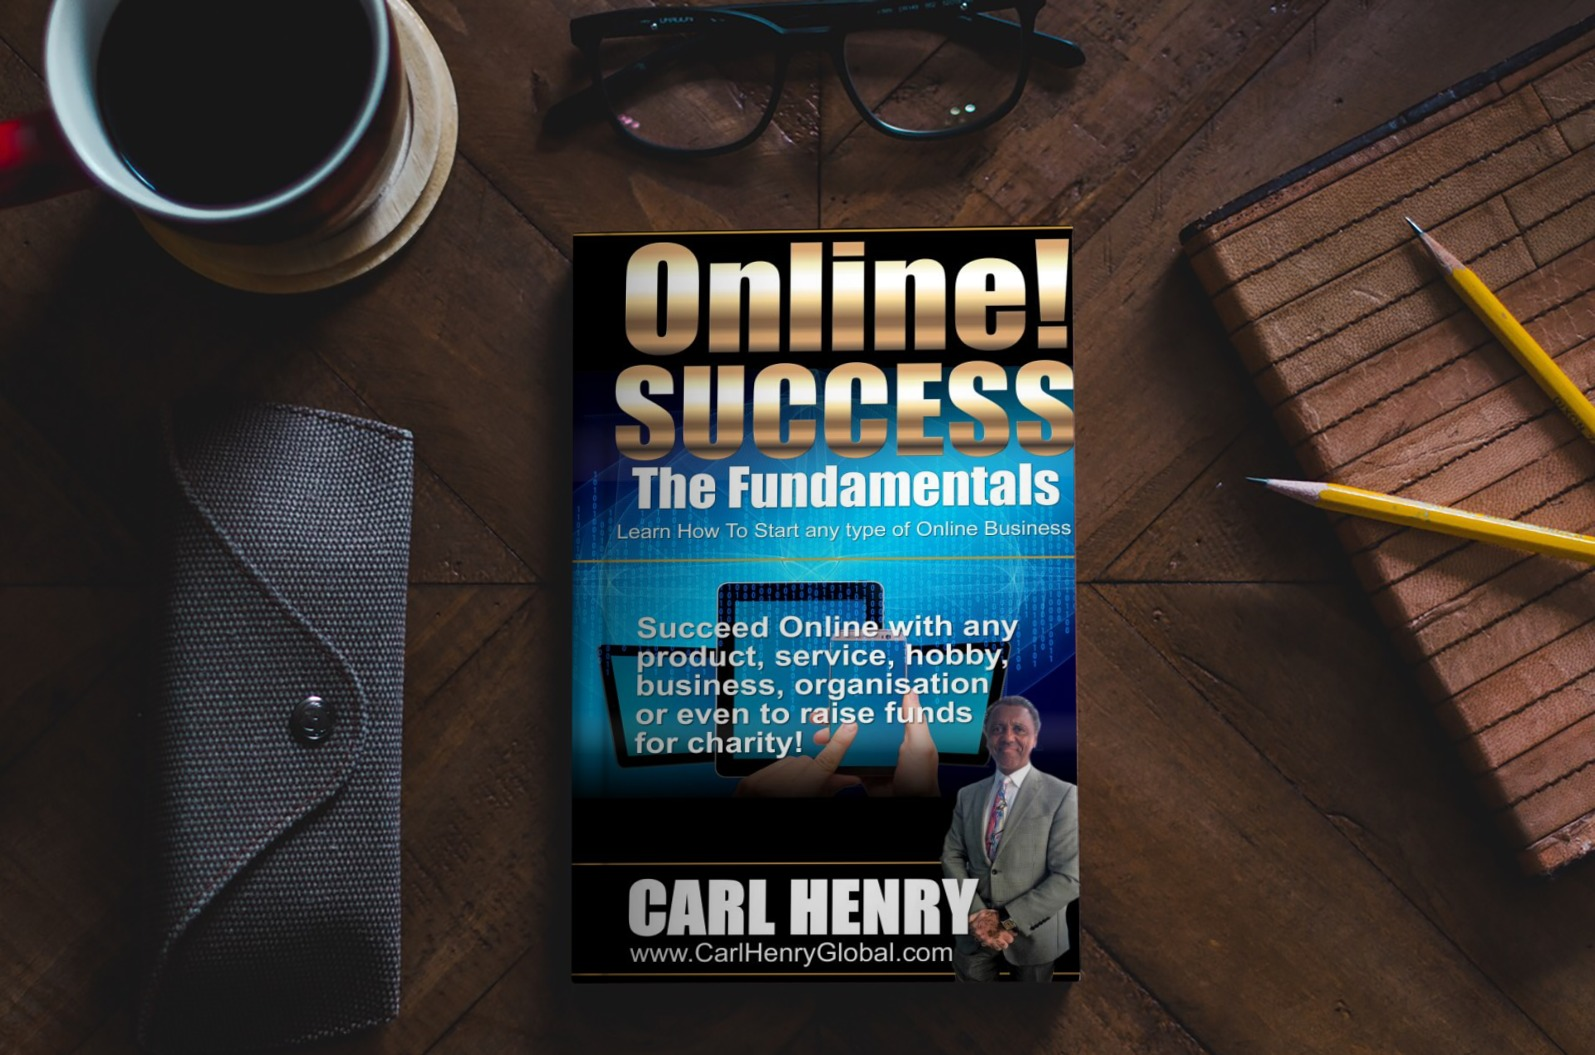 Carl-Henry-ONLINE-SUCCESS43.jpg